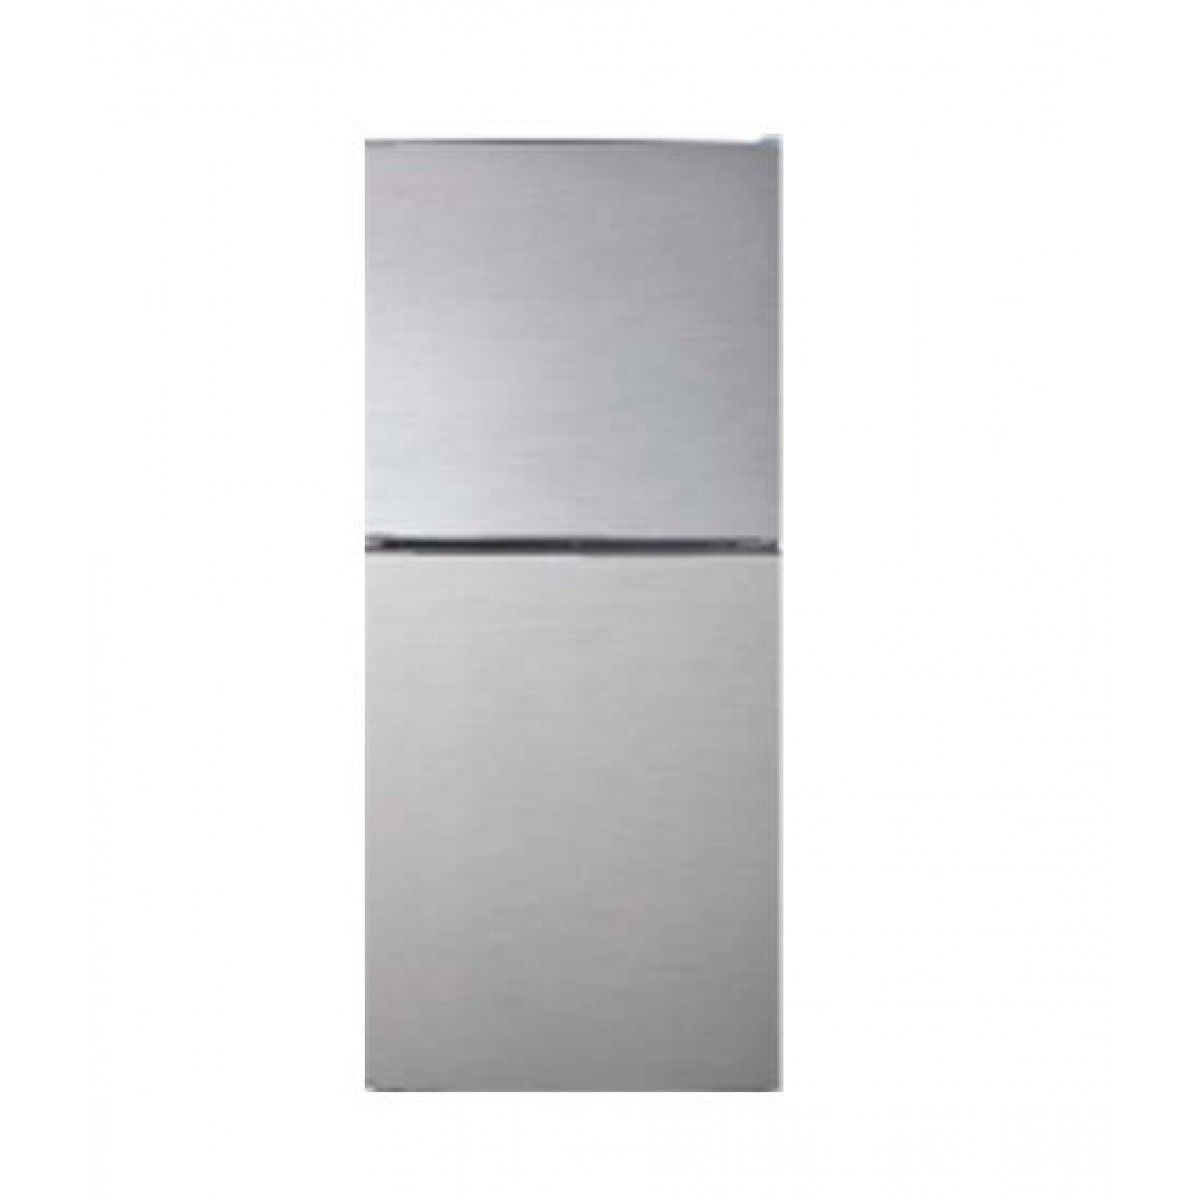 Changhong Ruba CHR -DD418S Double Door Direct Cool 15 cu ft Refrigerator